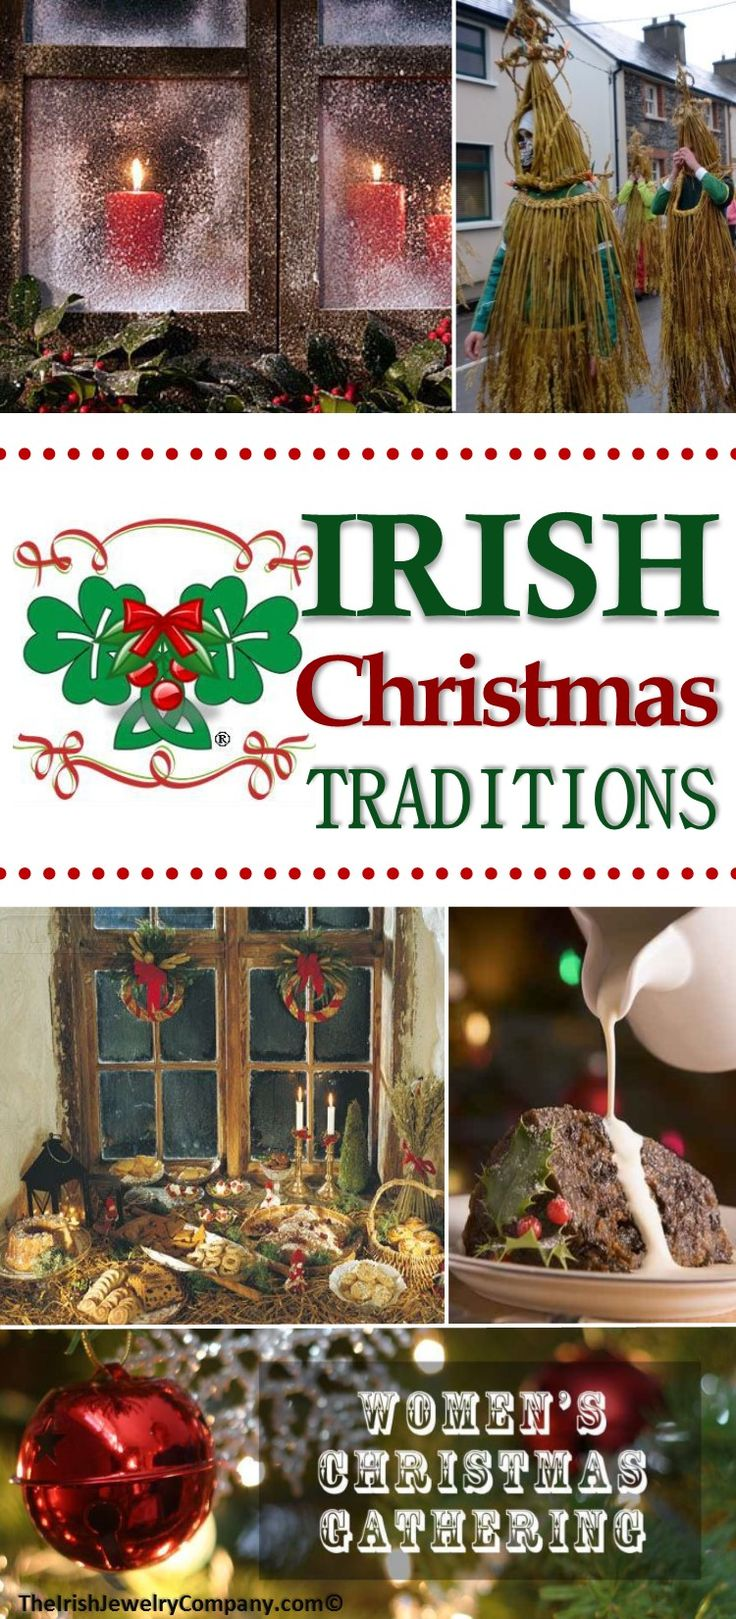 Ireland is a magical country, filled with tradition and folklore dating back many years. Christmas in Ireland is an especially magical time of year. Many Irish Christmas traditions have become part...